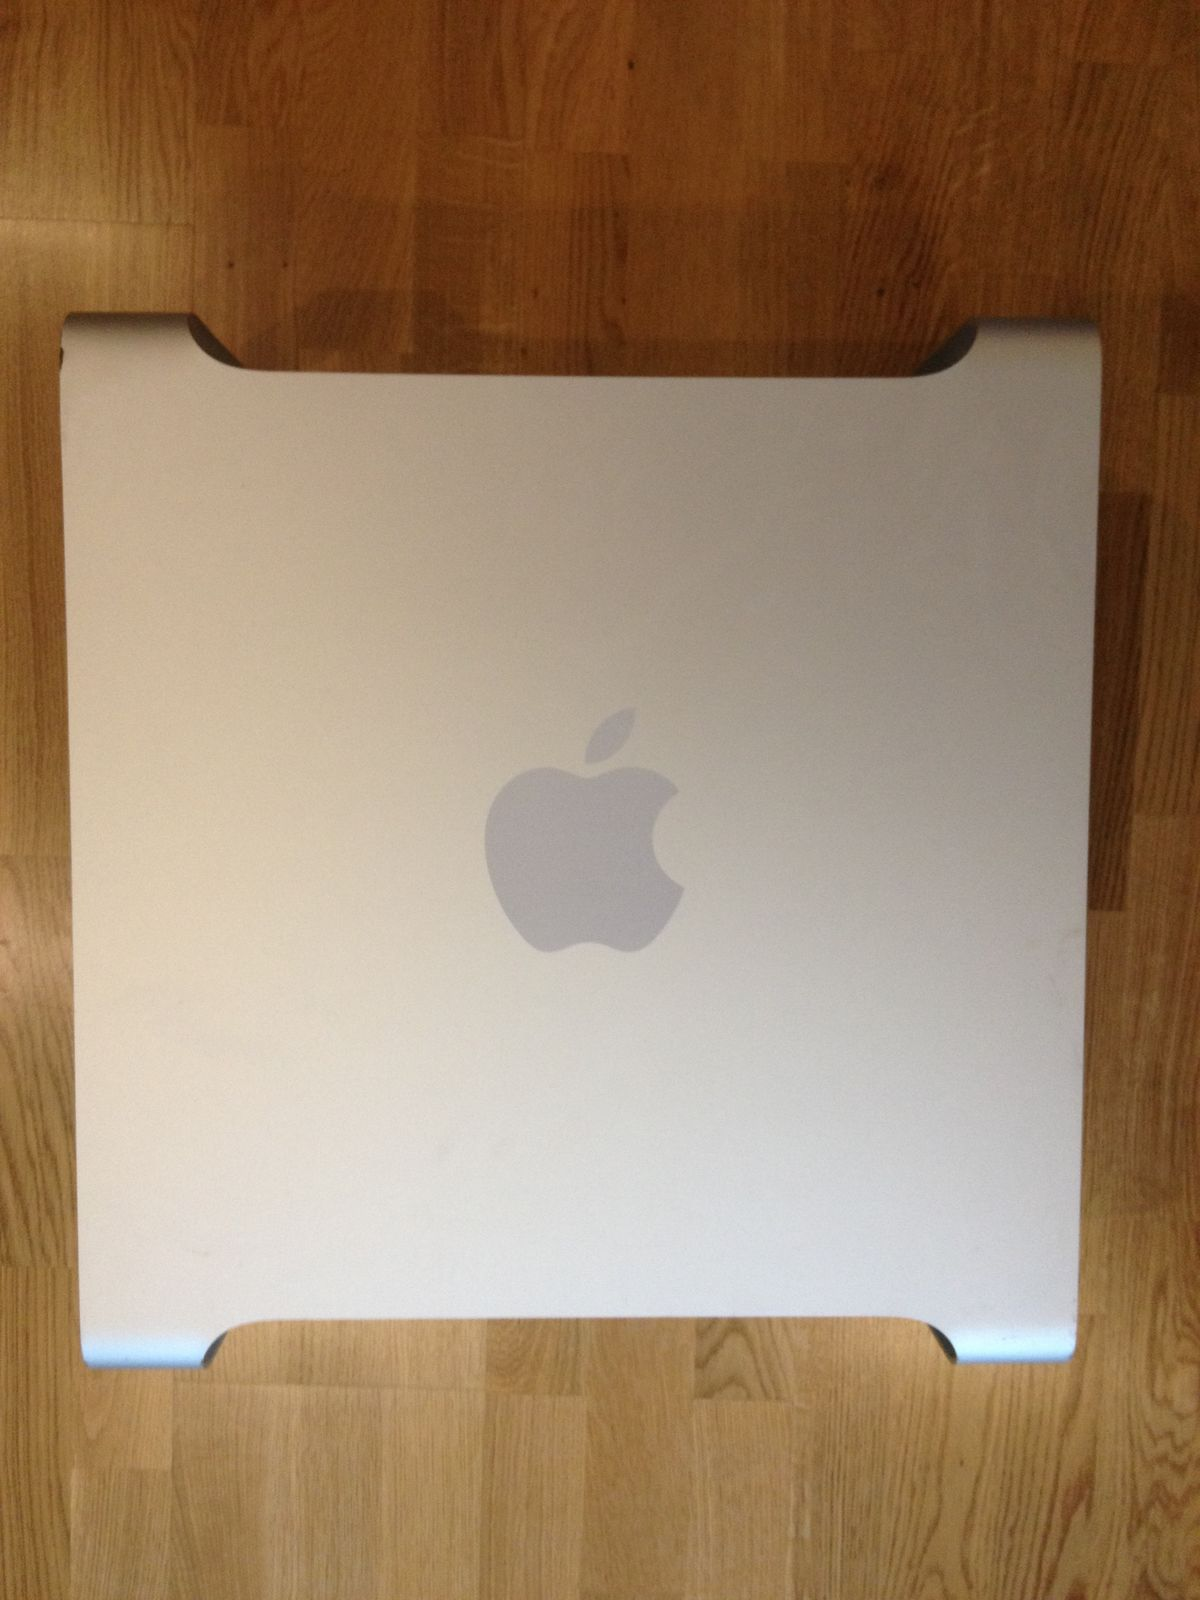 Apple Mac Pro - MA356LL/A